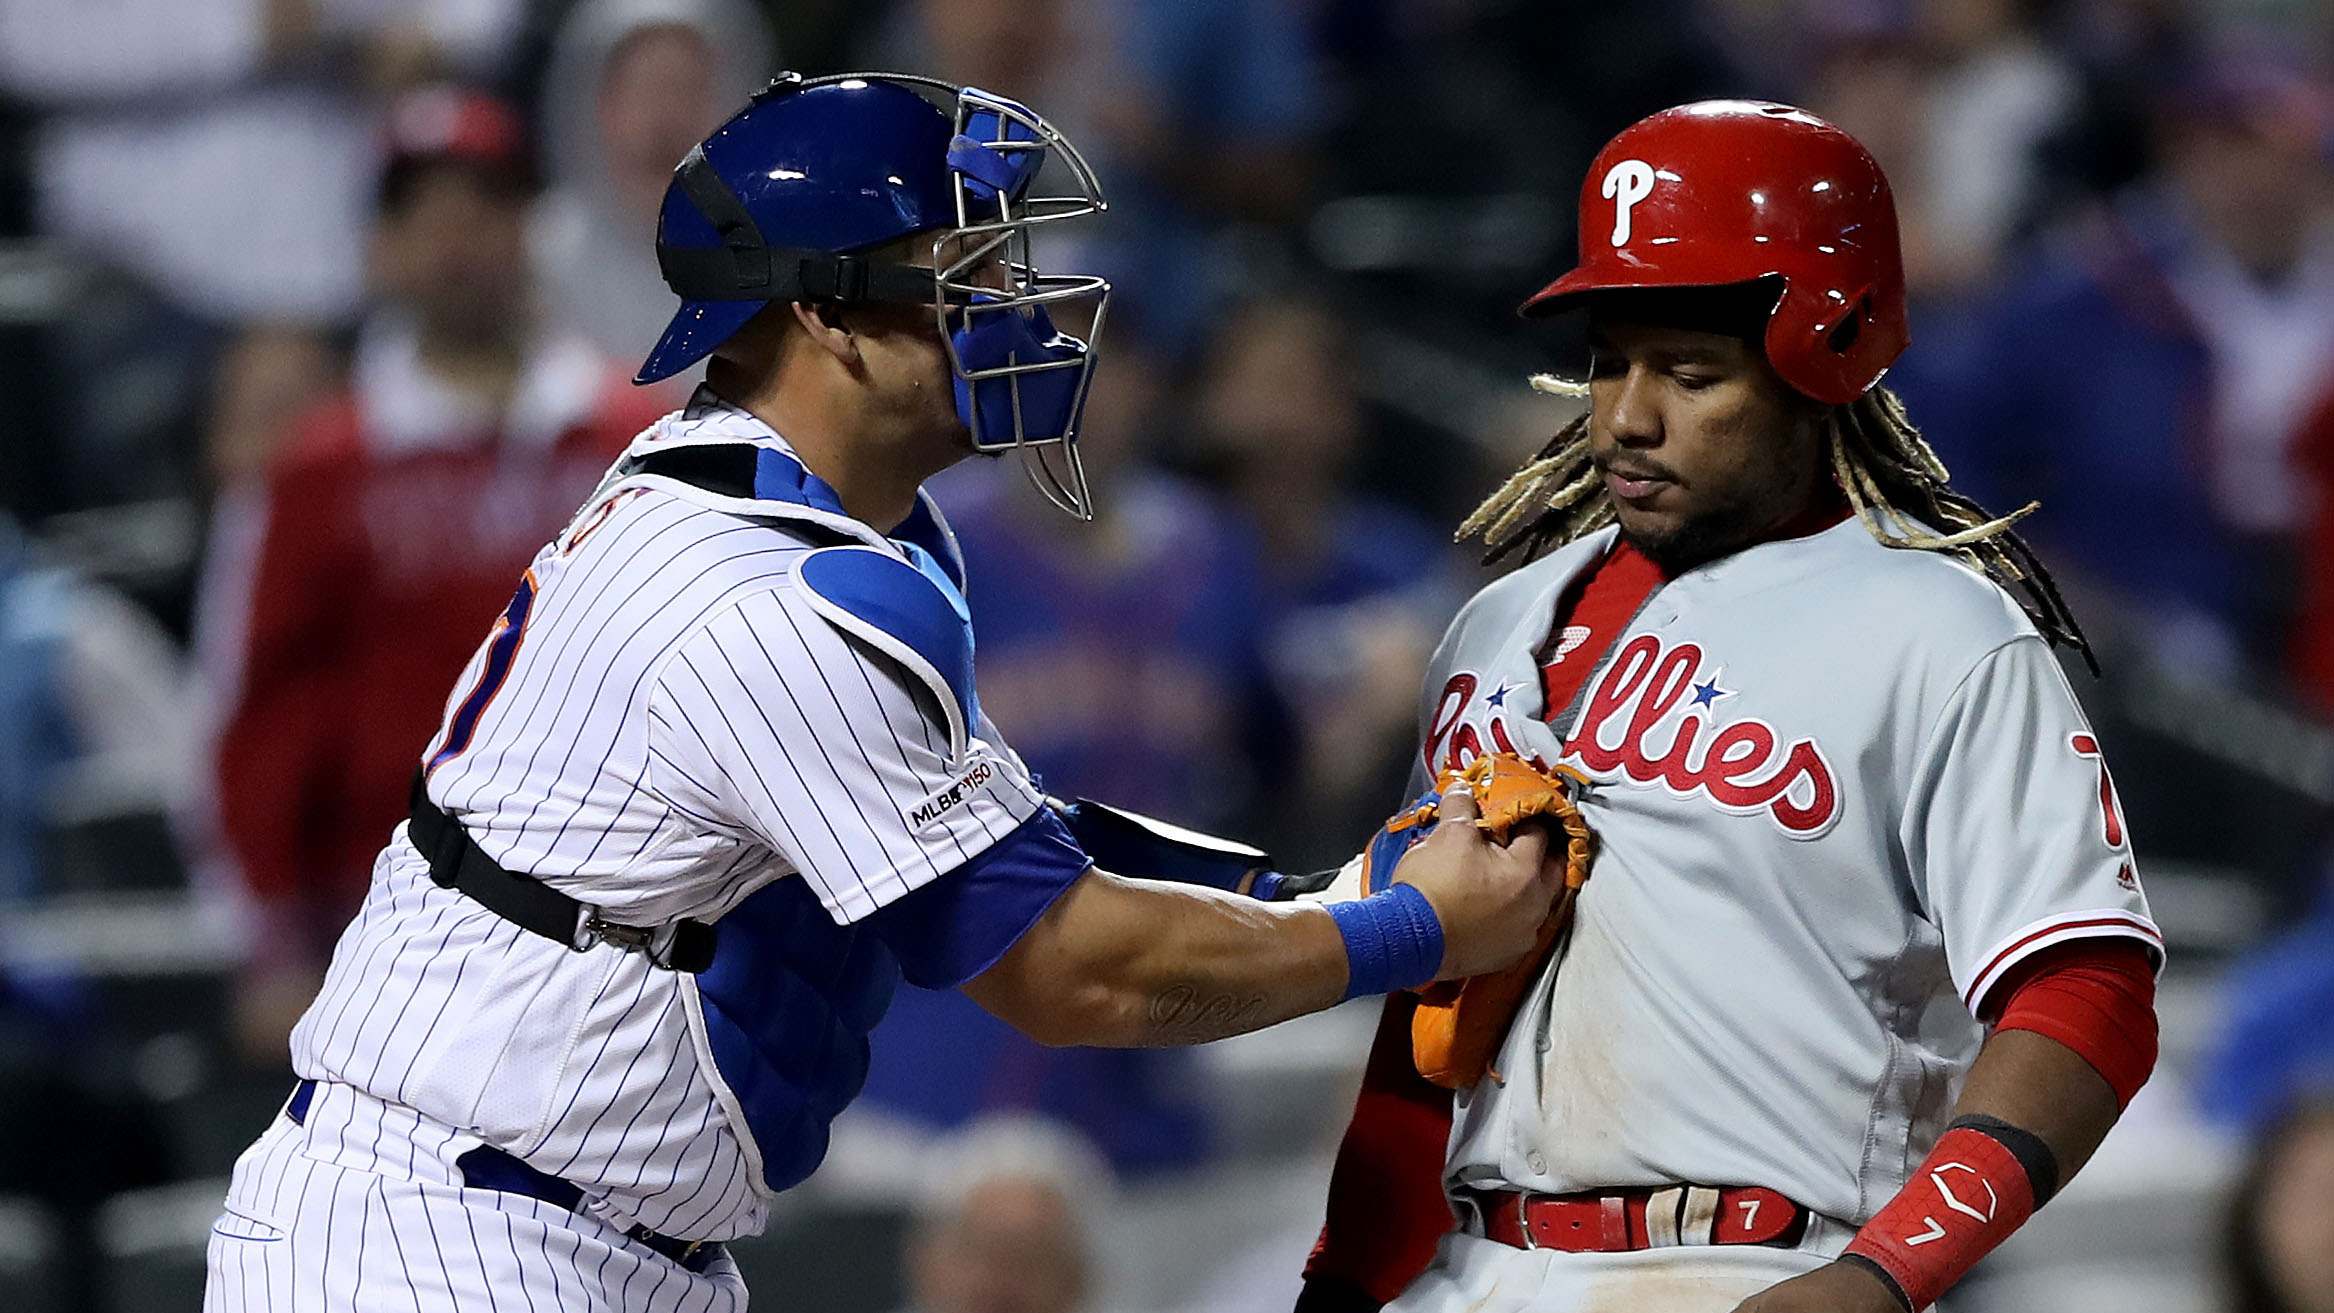 Phillies' Maikel Franco thrown out at home vs. Mets (video)